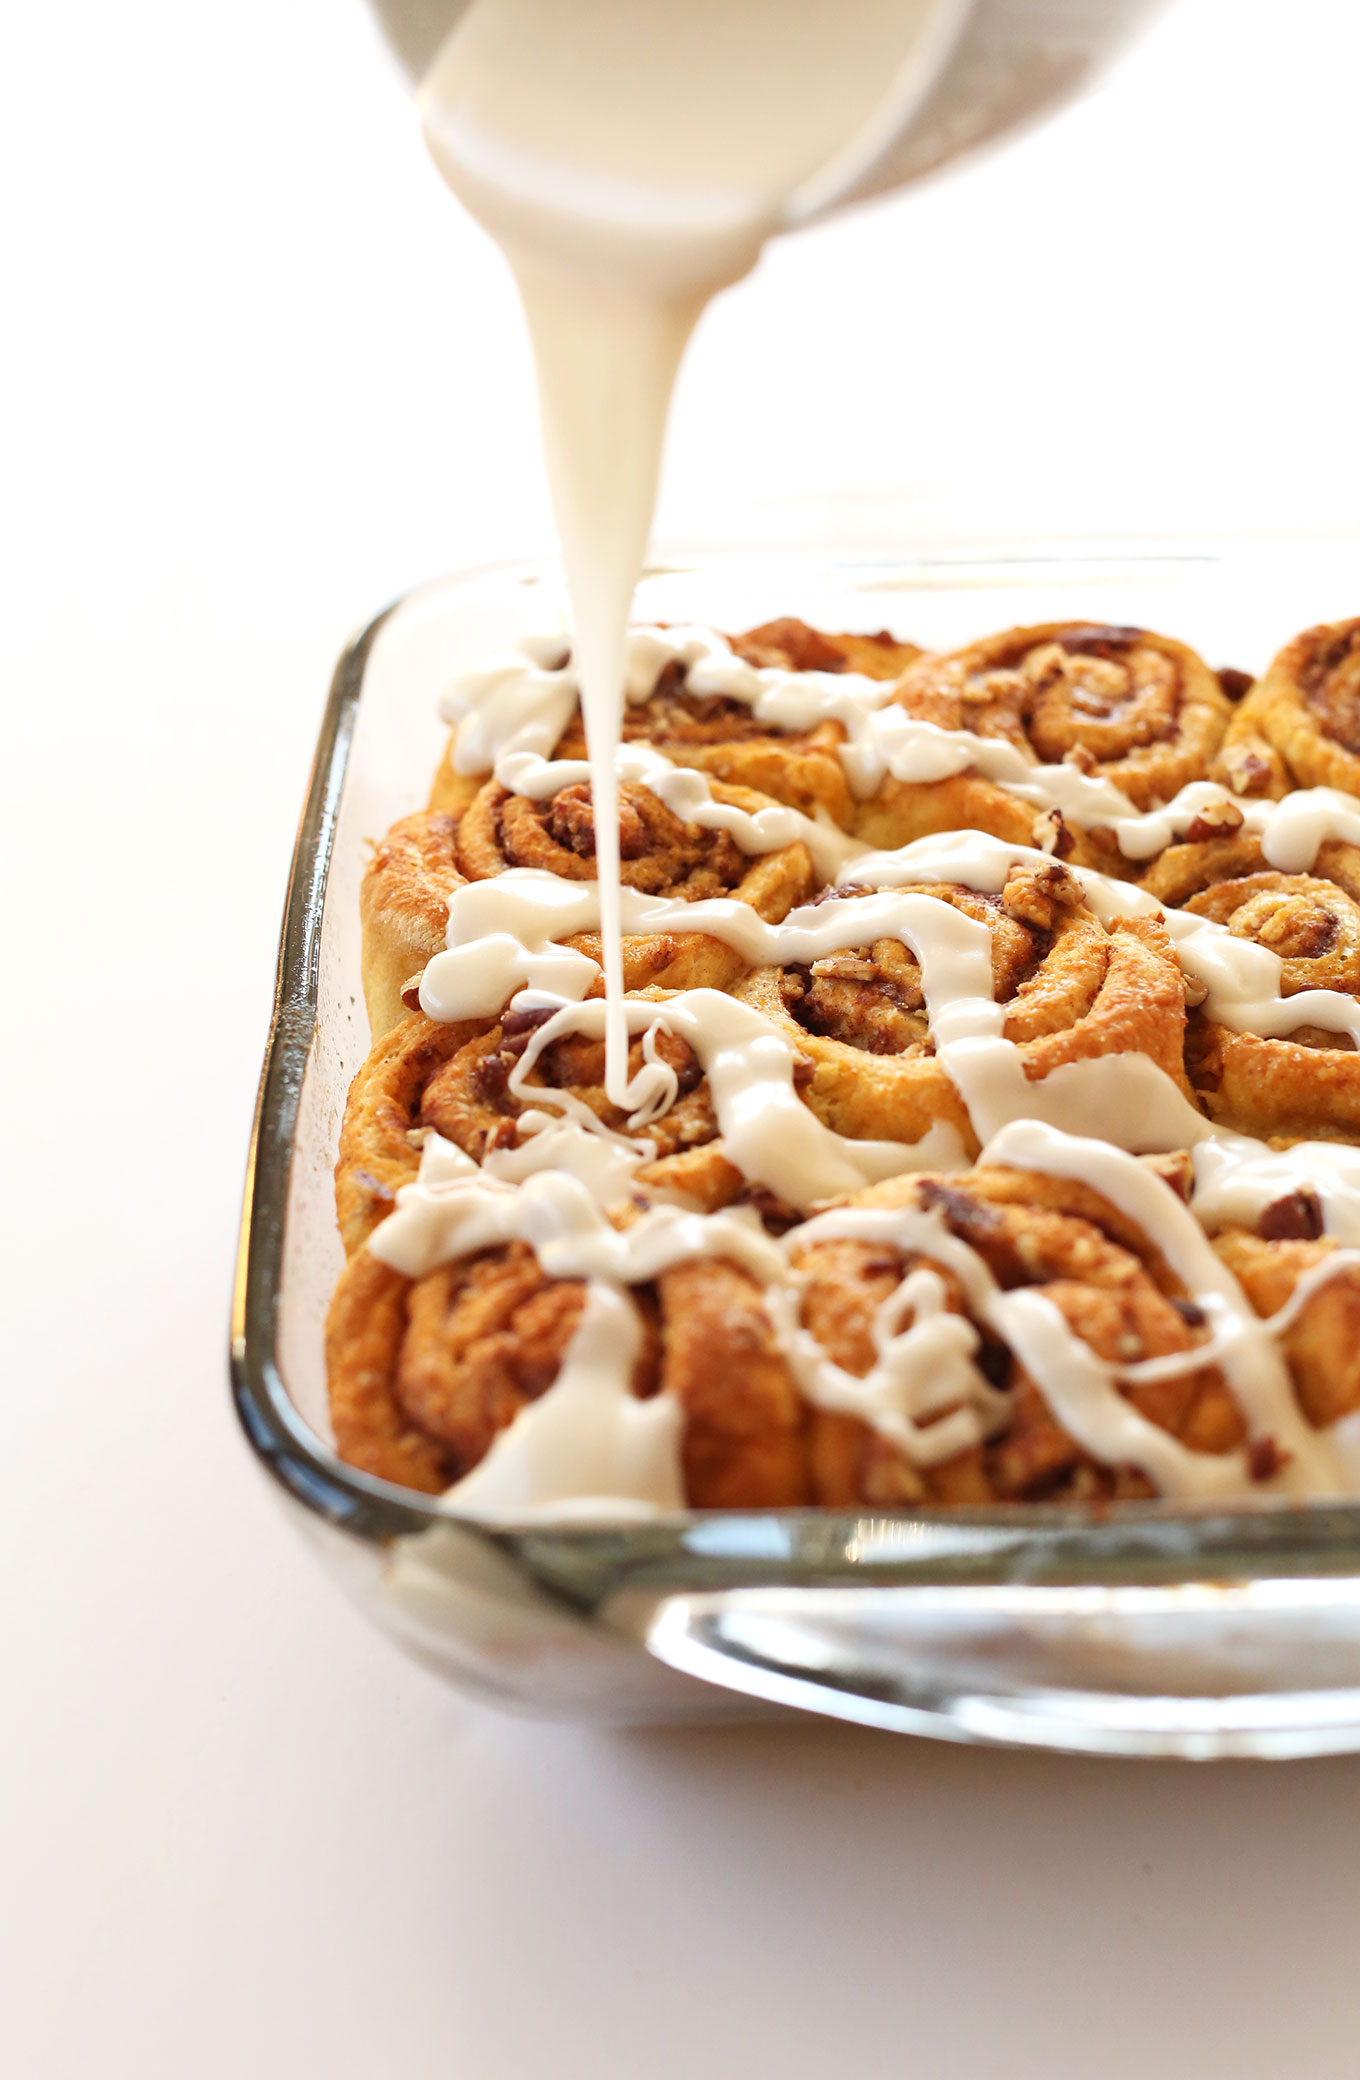 1-Bowl-Vegan-PUMPKIN-Cinnamon-Rolls-Simple-perfectly-spiced-delicious (1)